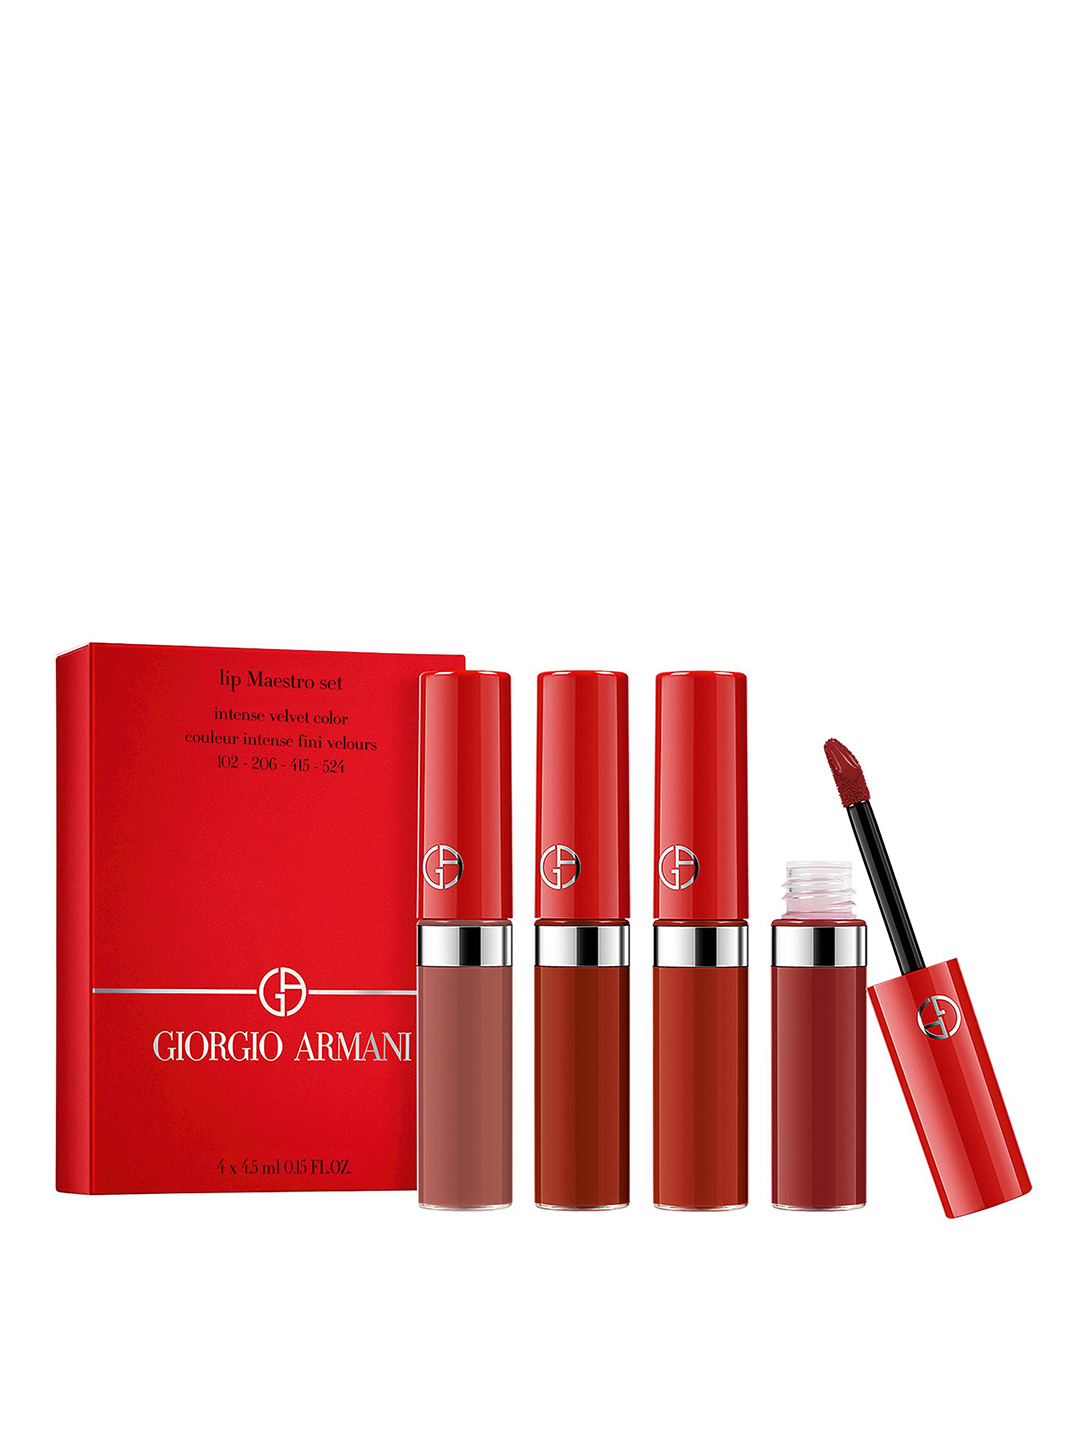 GIORGIO ARMANI Lip Maestro Velvet Matte Liquid Lipstick Set - Lunar New Year Beauty